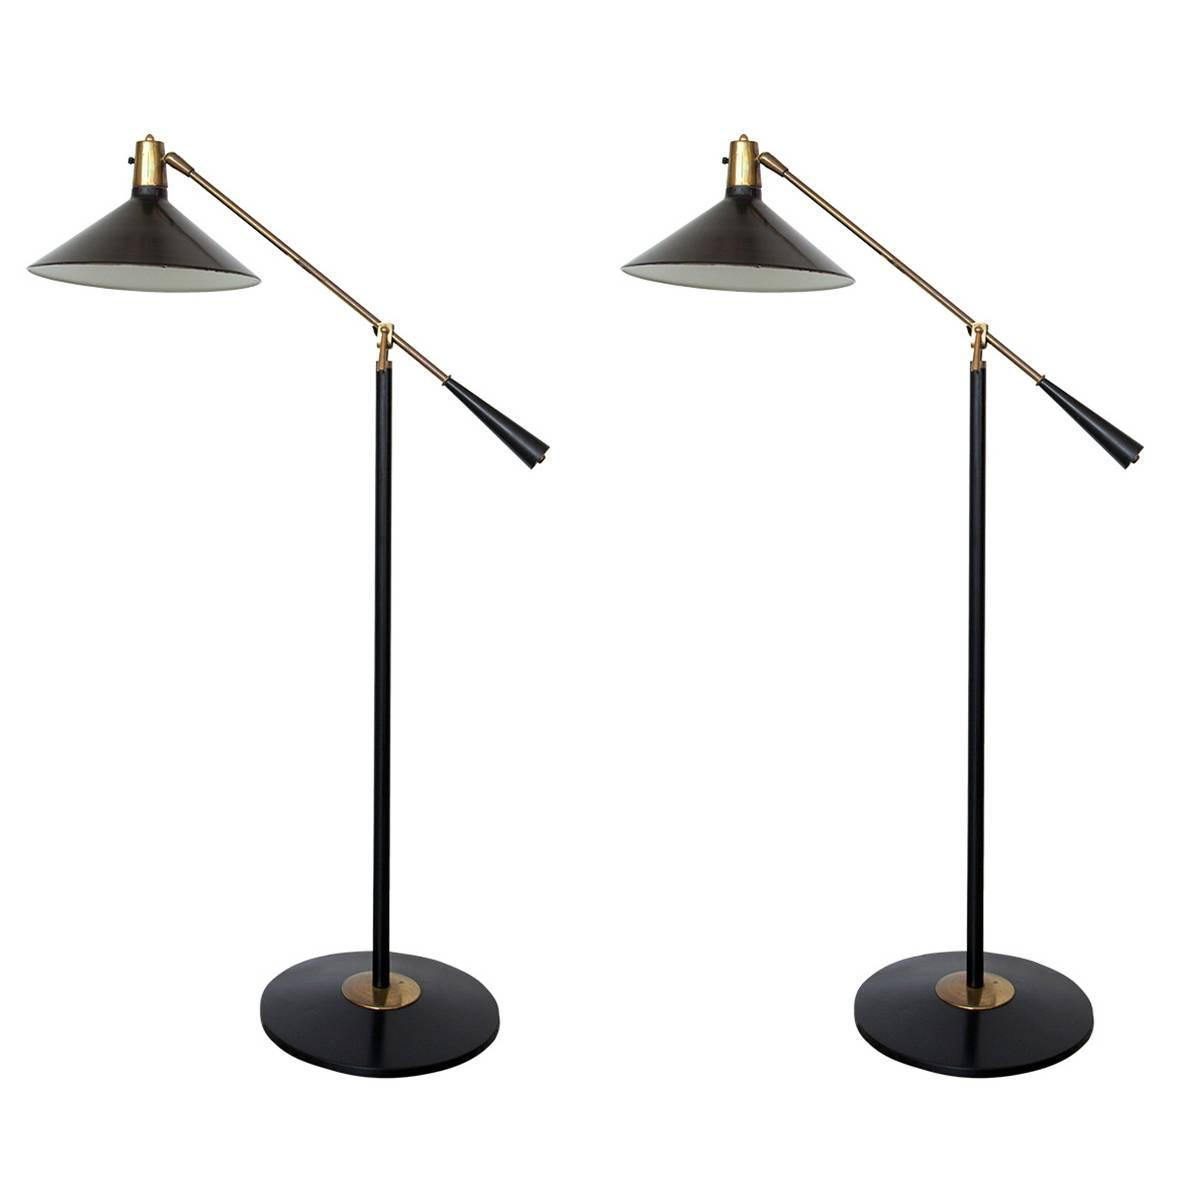 Stilnovo Italian Mid-Century Swing Arm Floor Lamp For Sale